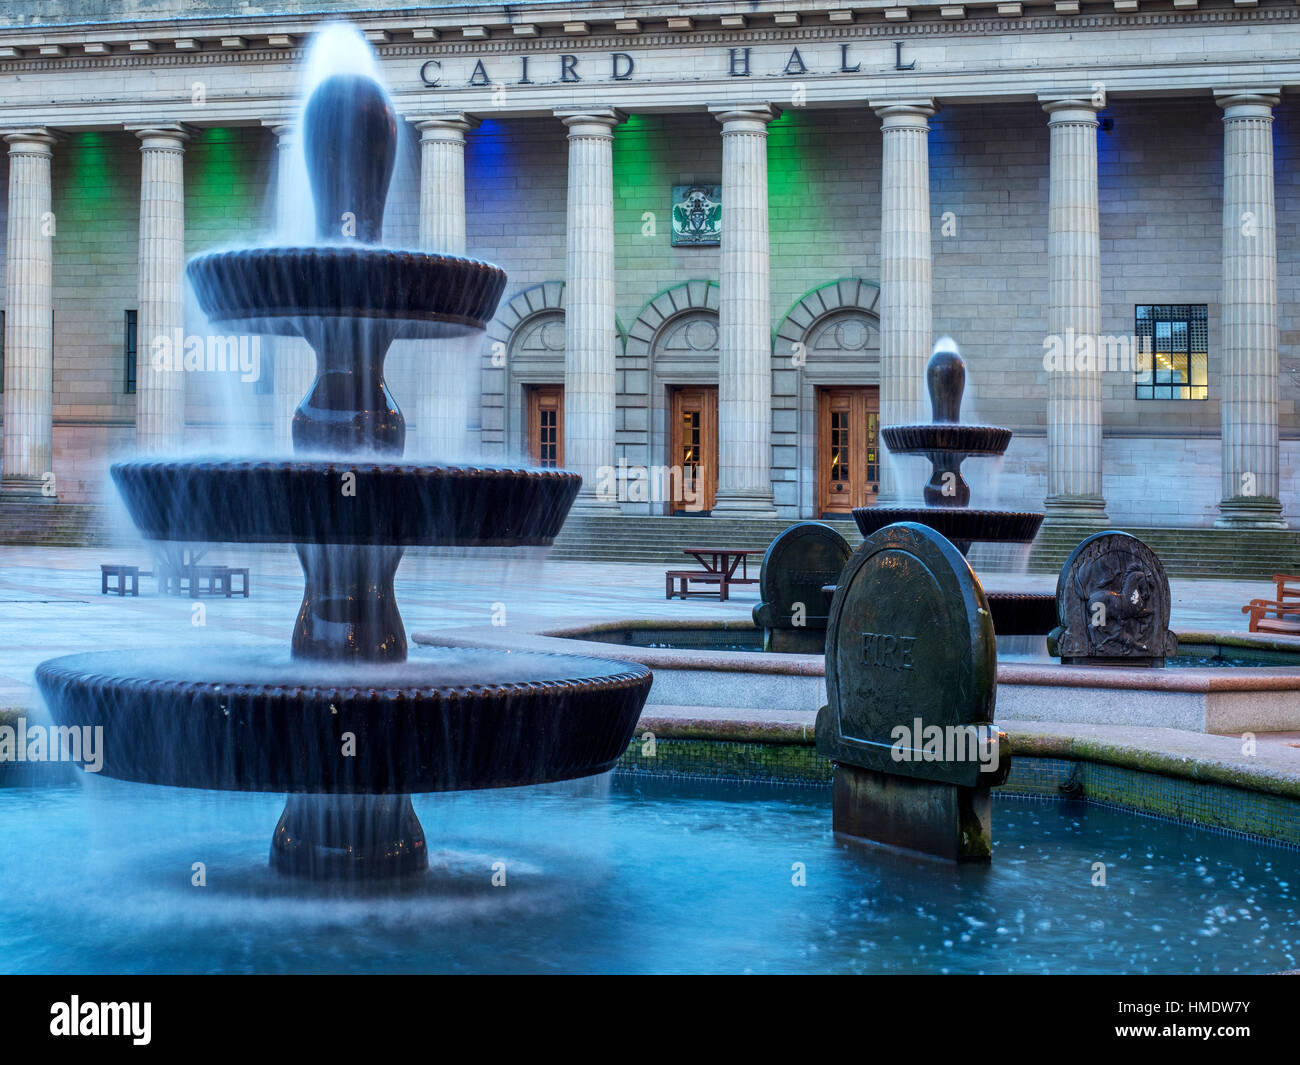 Fountains and Coloured Lights on Caird Hall at Dusk in Dundee Scotland - Stock Image